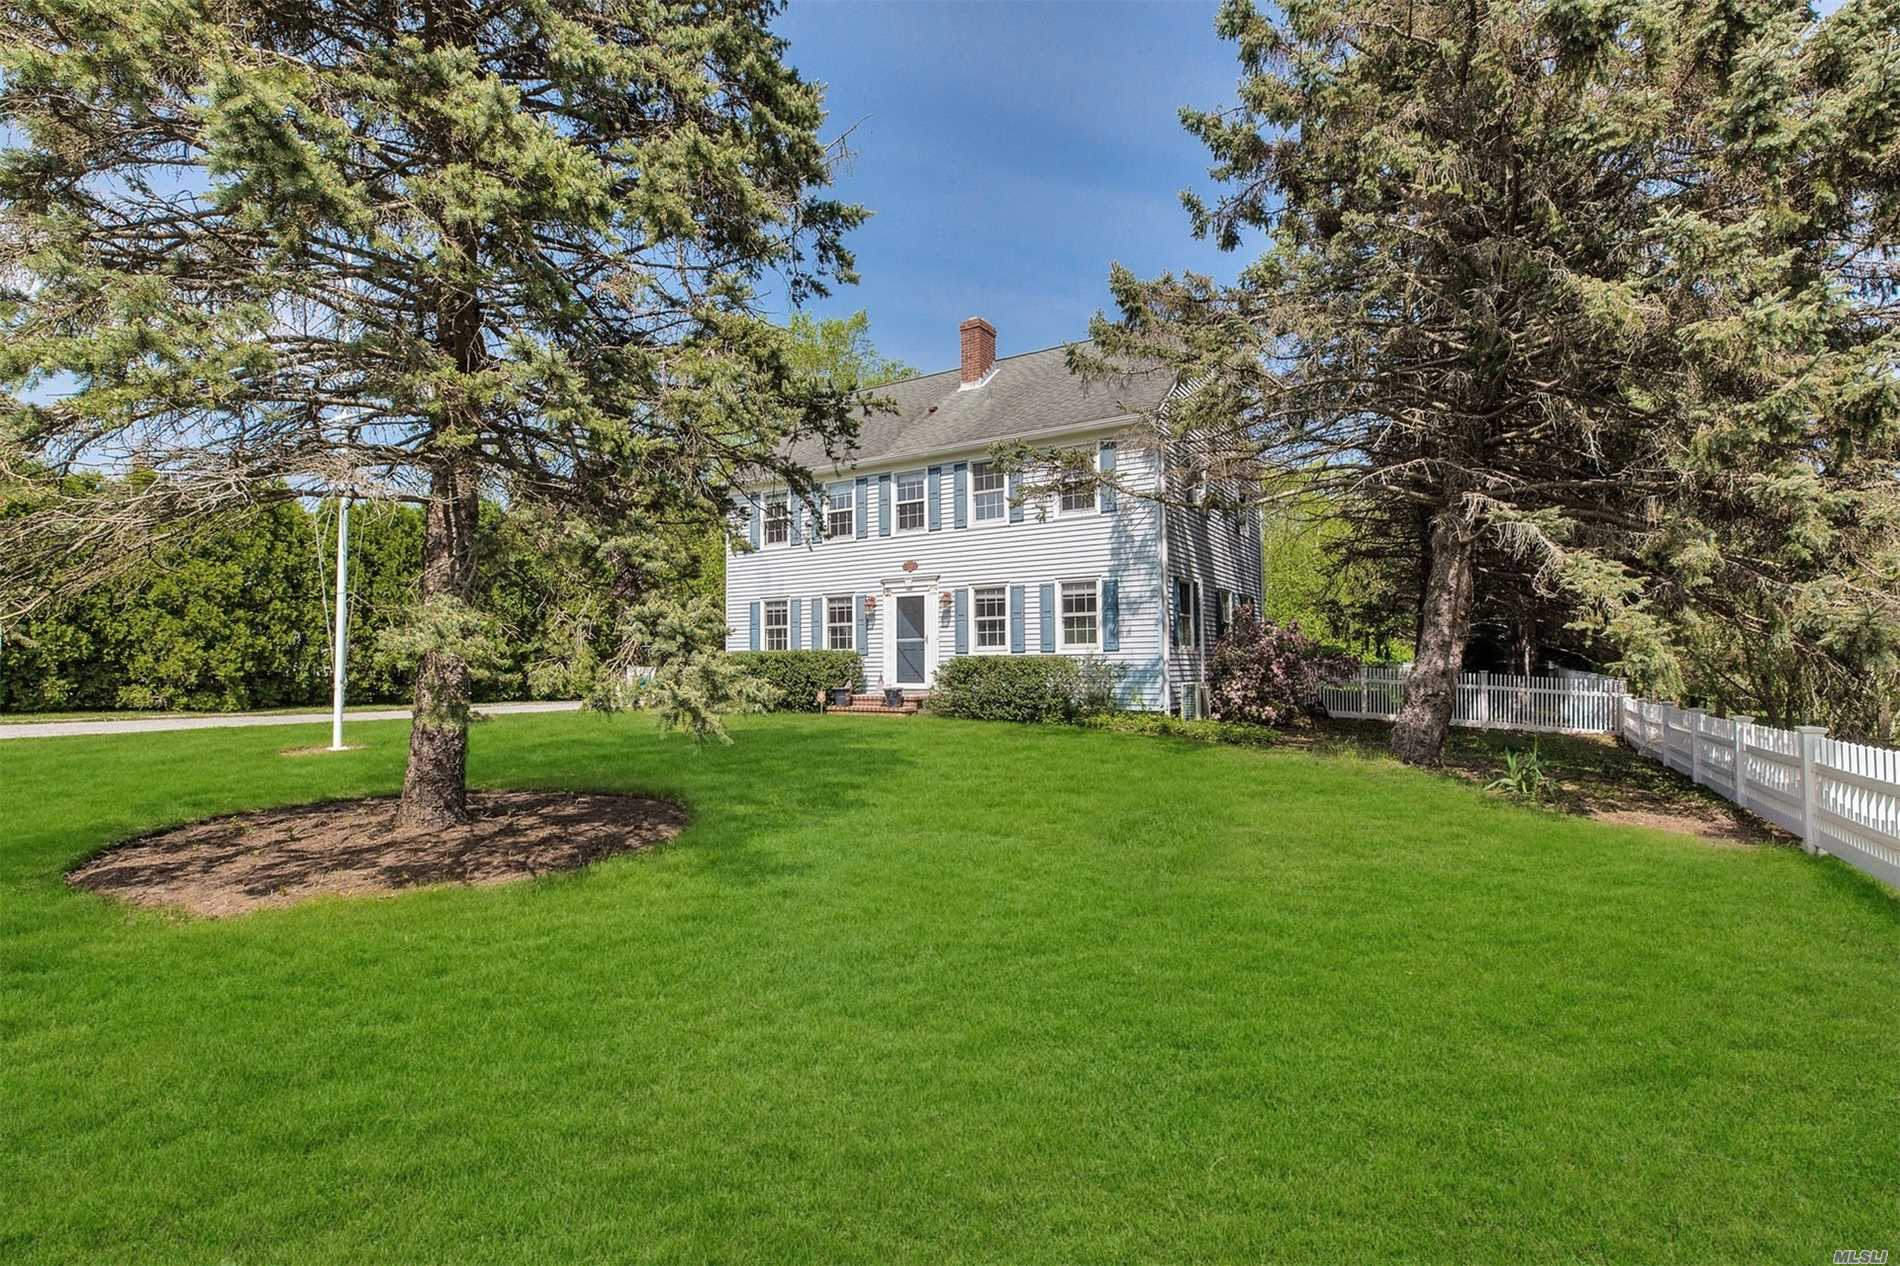 200 Breitstadt Ct - Southold, New York